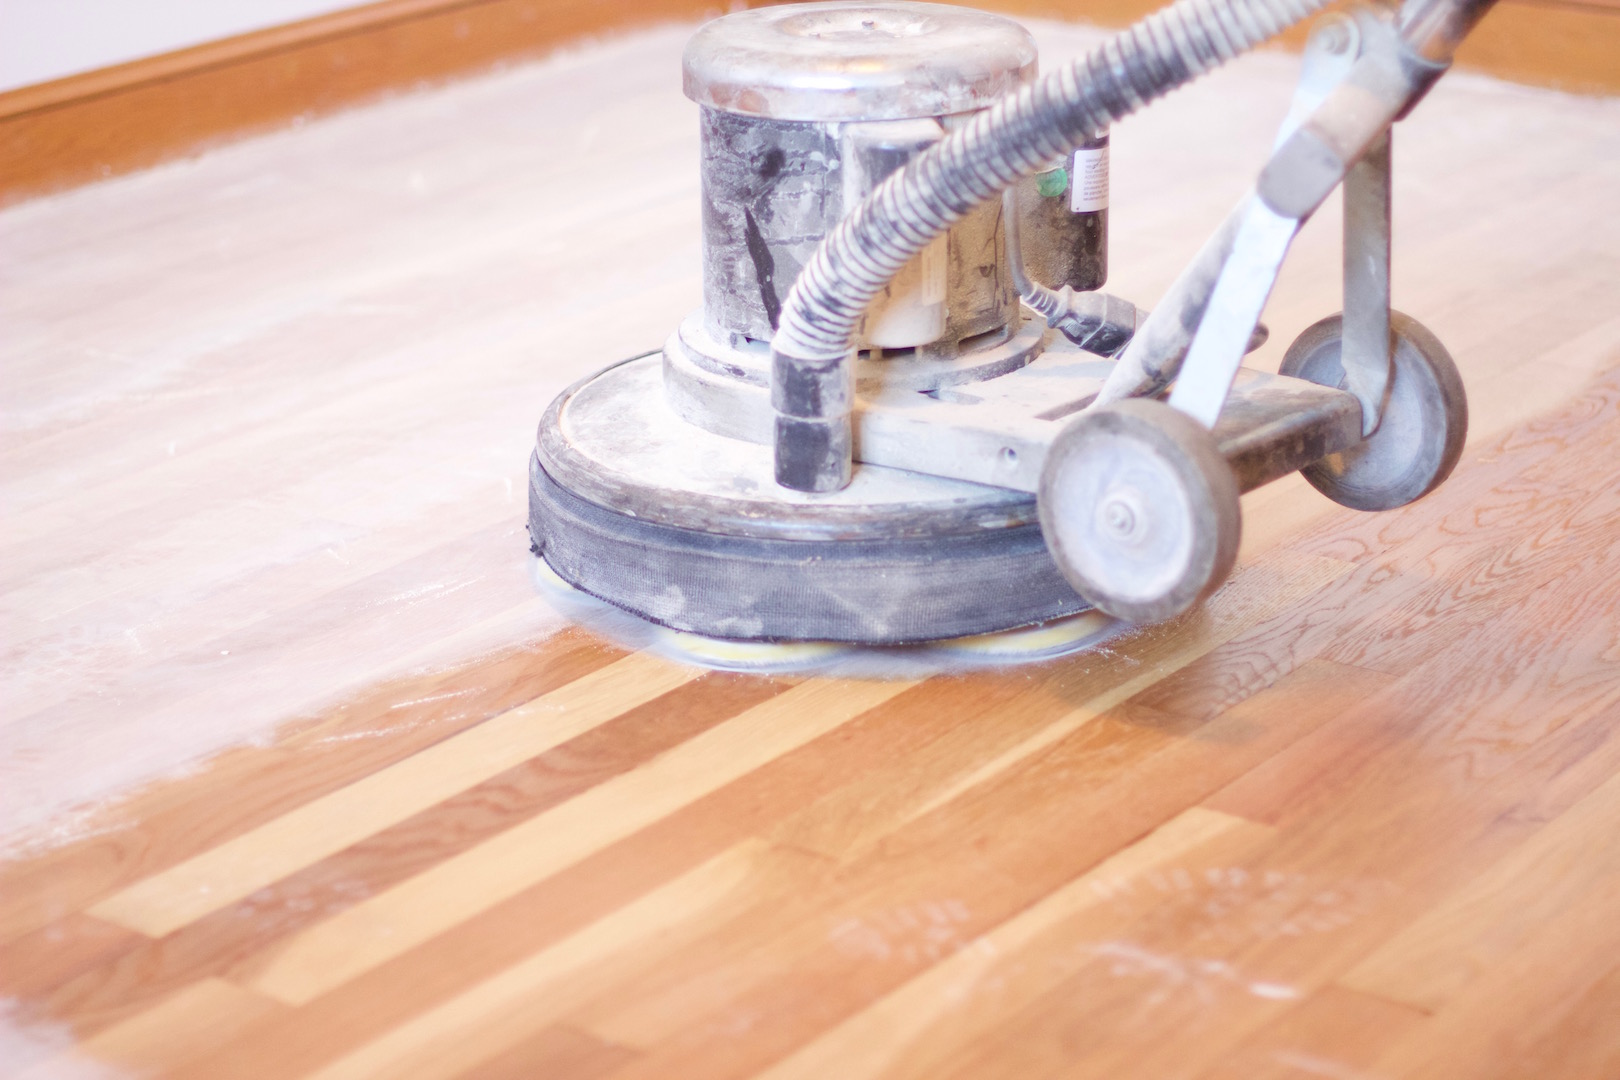 Gandswoodfloors hardwood floor buffer how to lynnbostonwellesley floor buffer with multi disc driver solutioingenieria Image collections